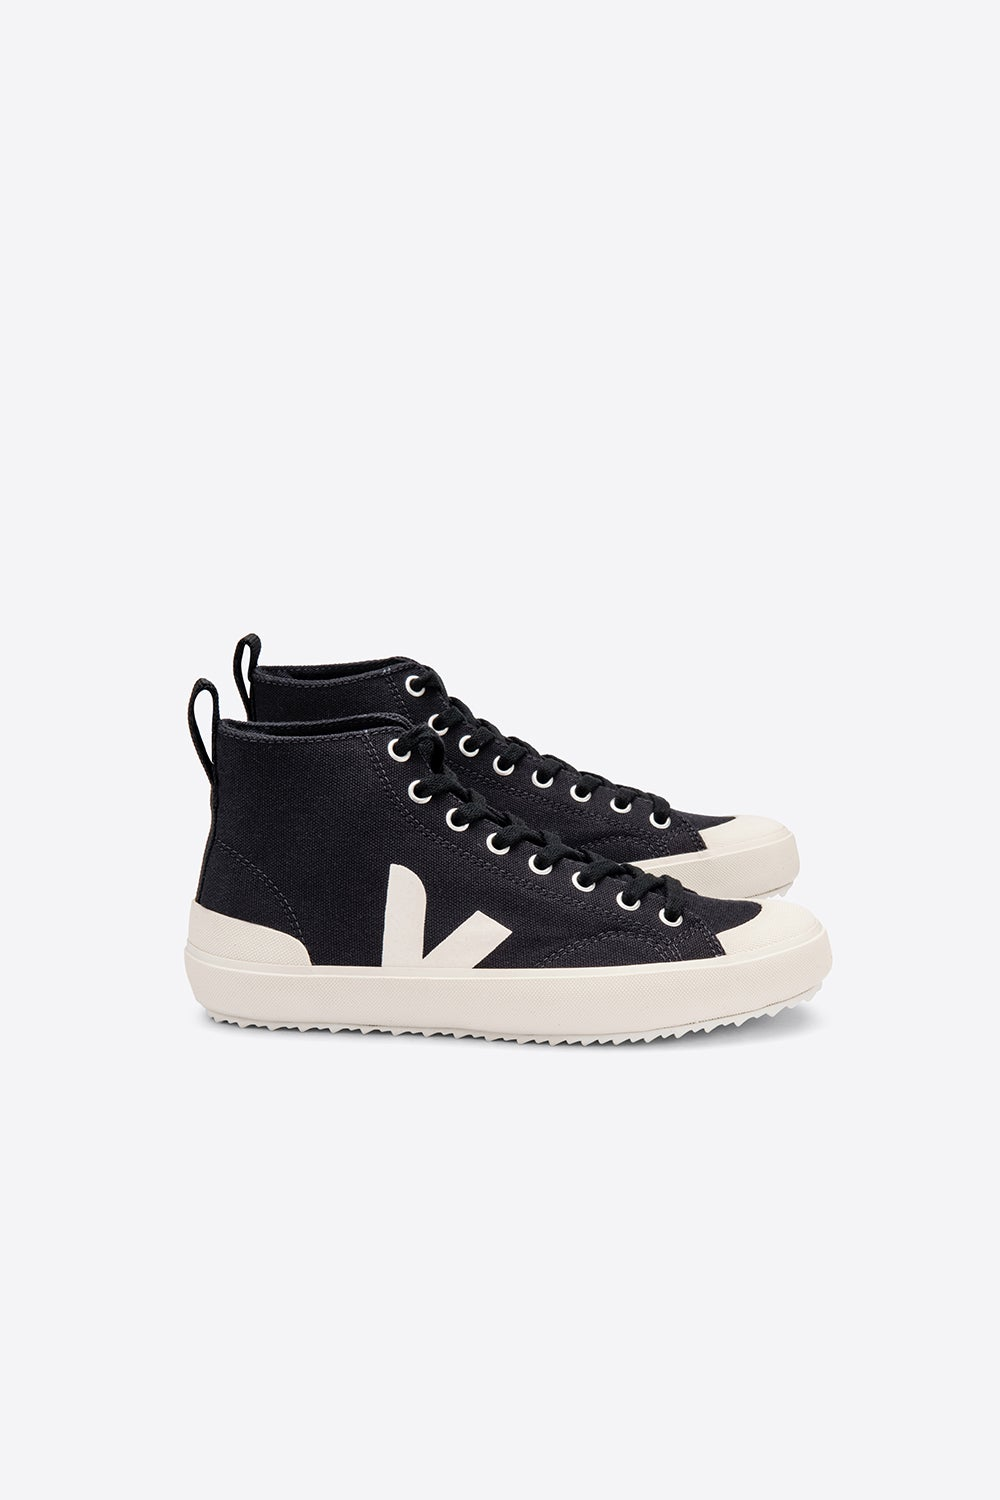 Veja Nova High Top Black/Pierre